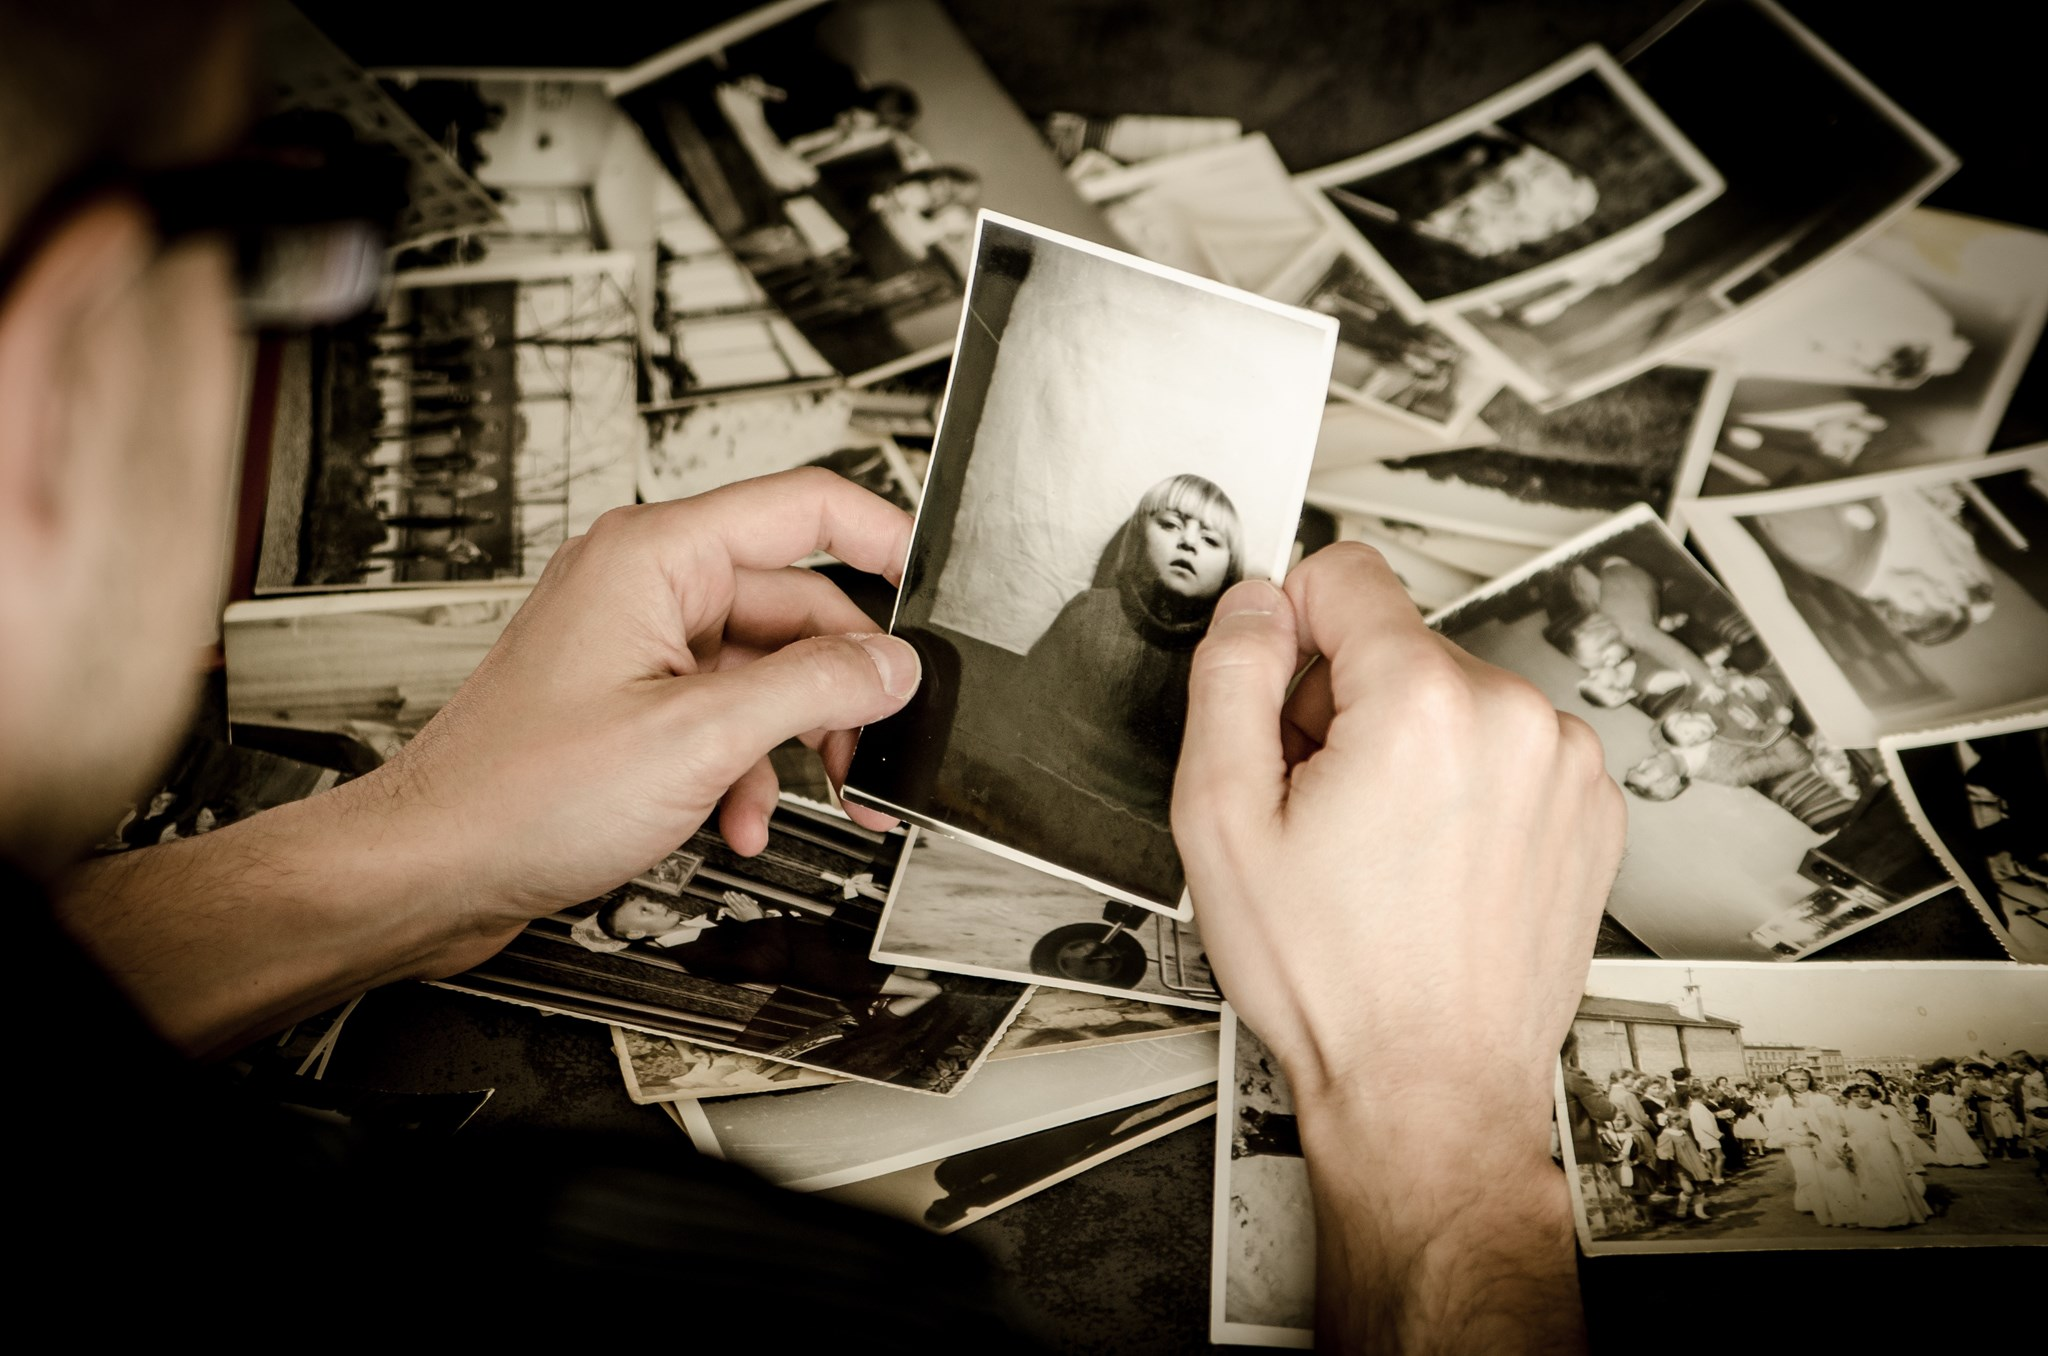 Man looking at old black and white photos